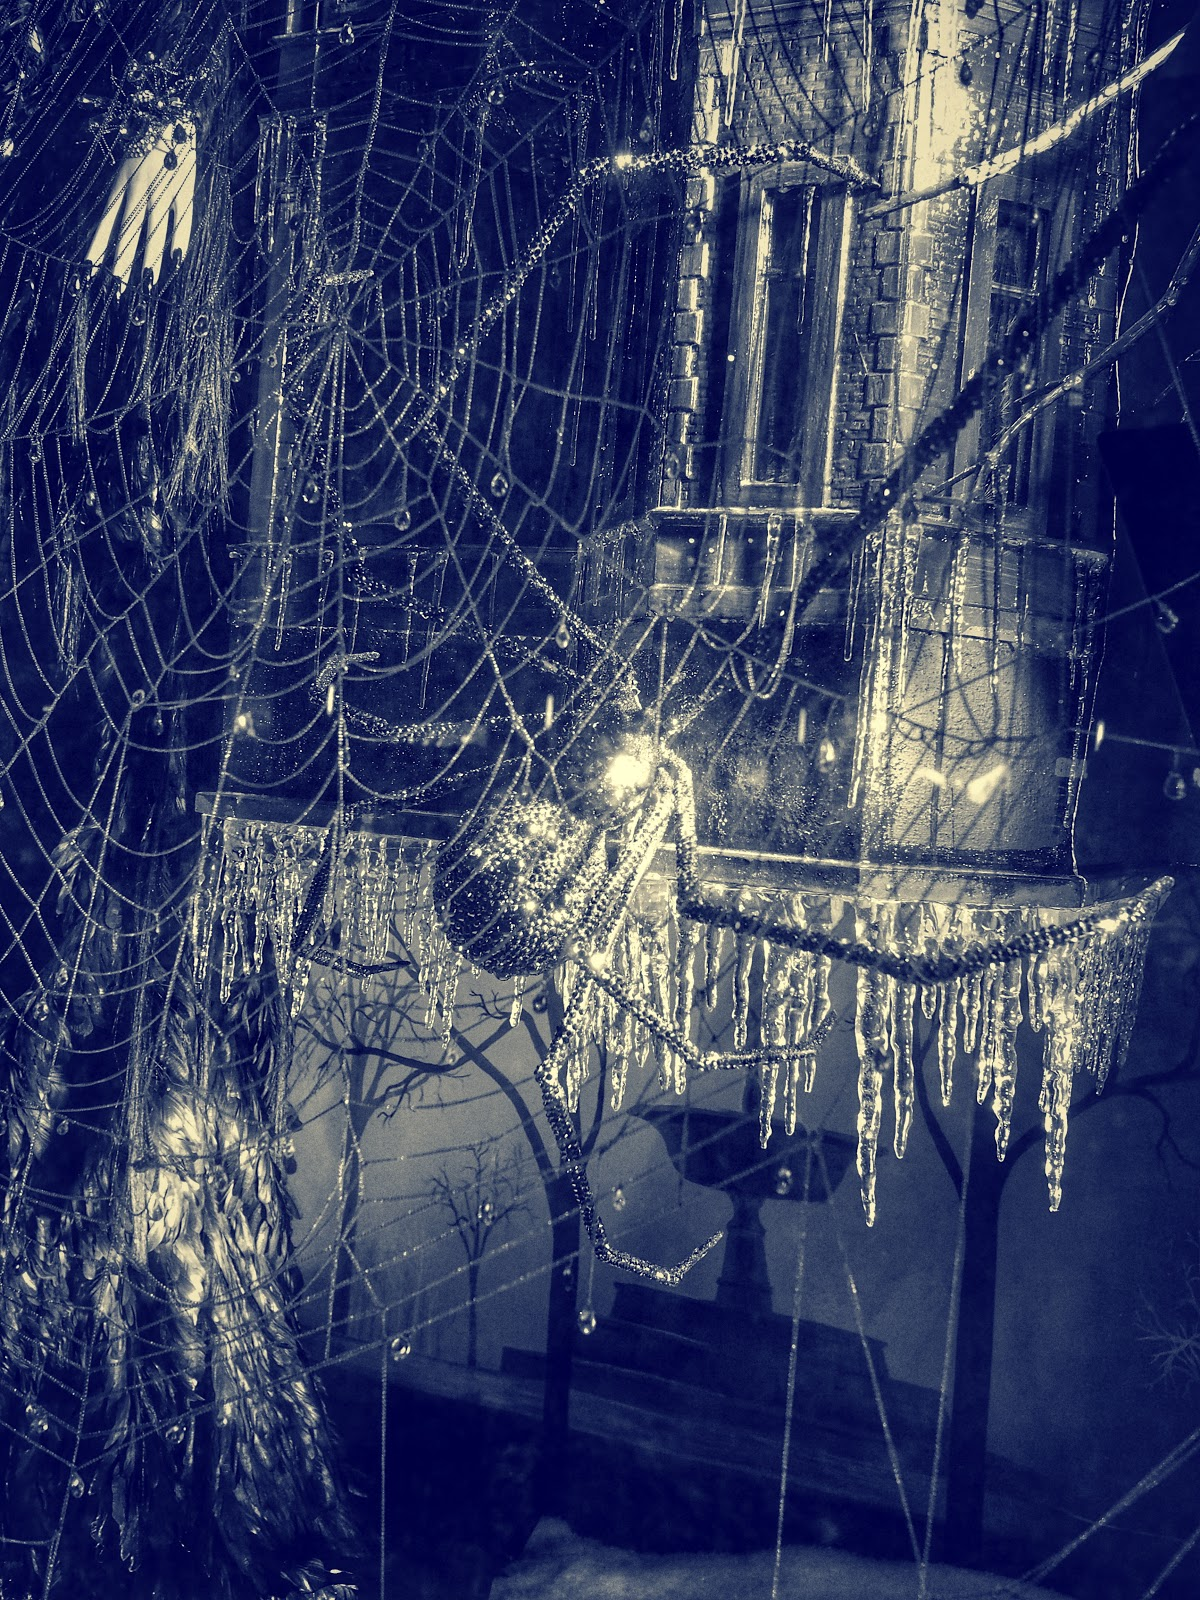 Step into My Parlor, #stepintomyparlor #Halloween #spider #holidaysonice #bgwindows #nyc #bergdorf #nyc 2014